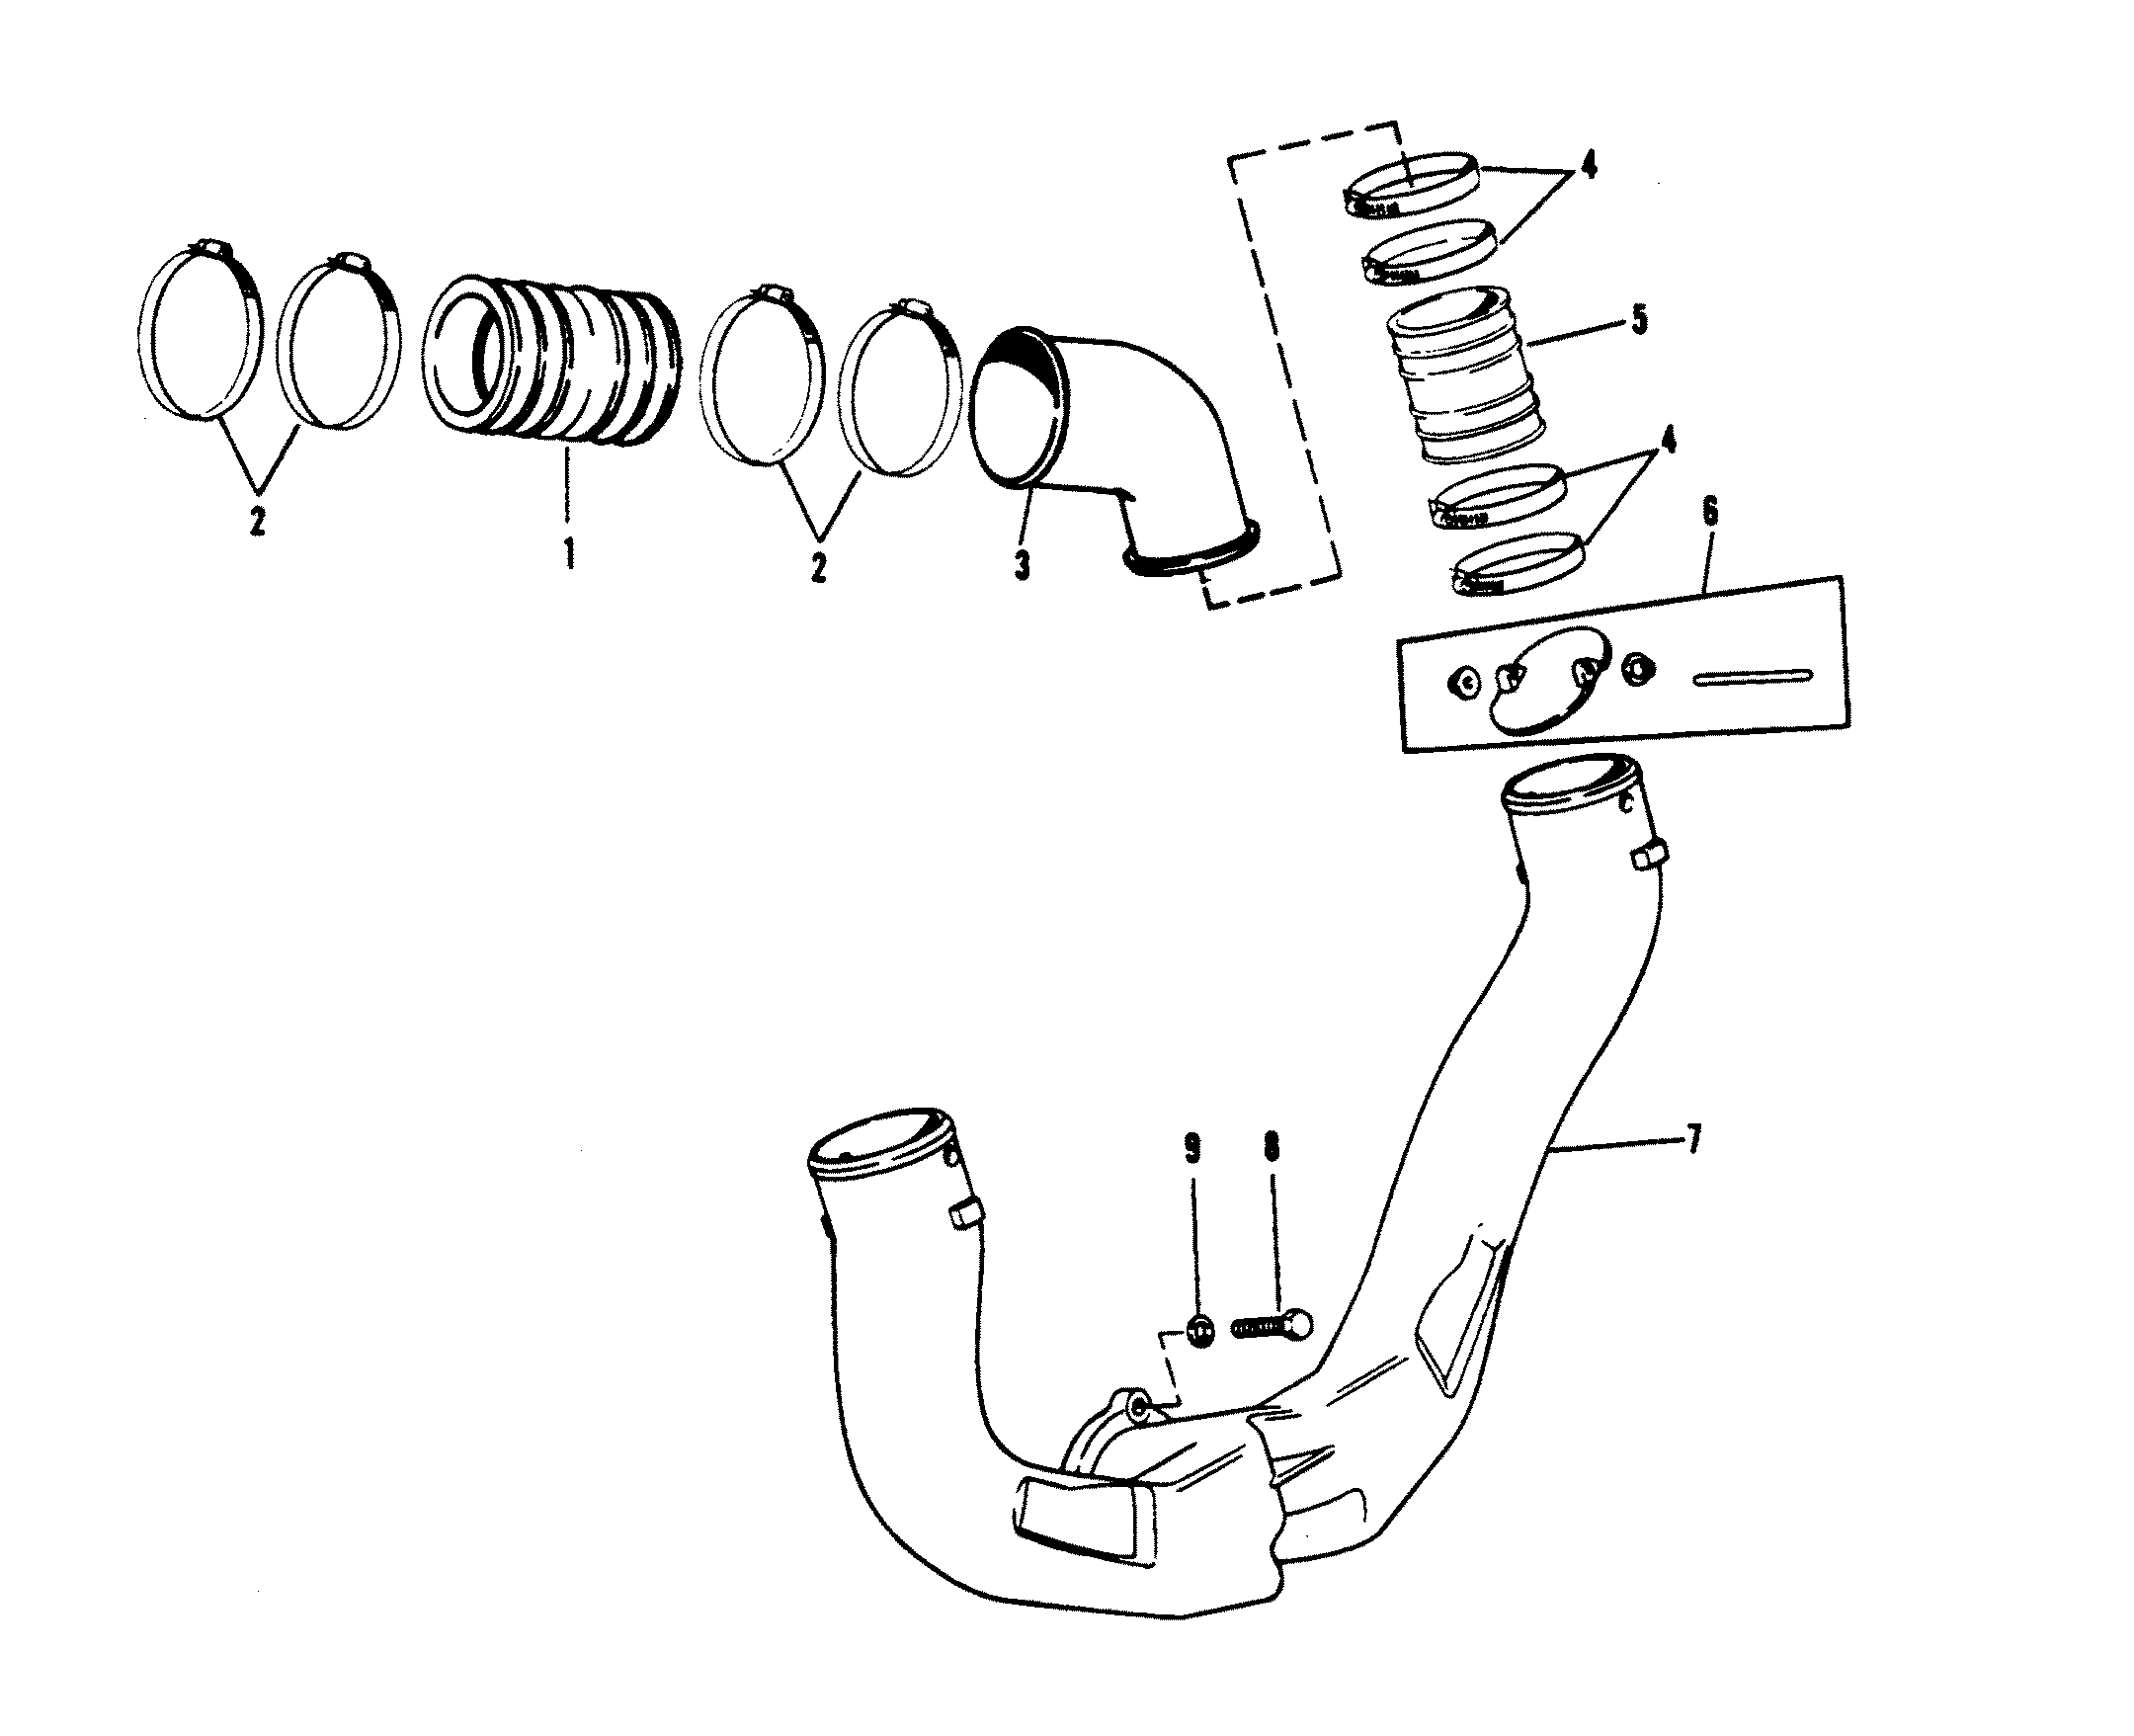 cp performance exhaust system SBC 350 Diagram section drawing hover or click to view larger